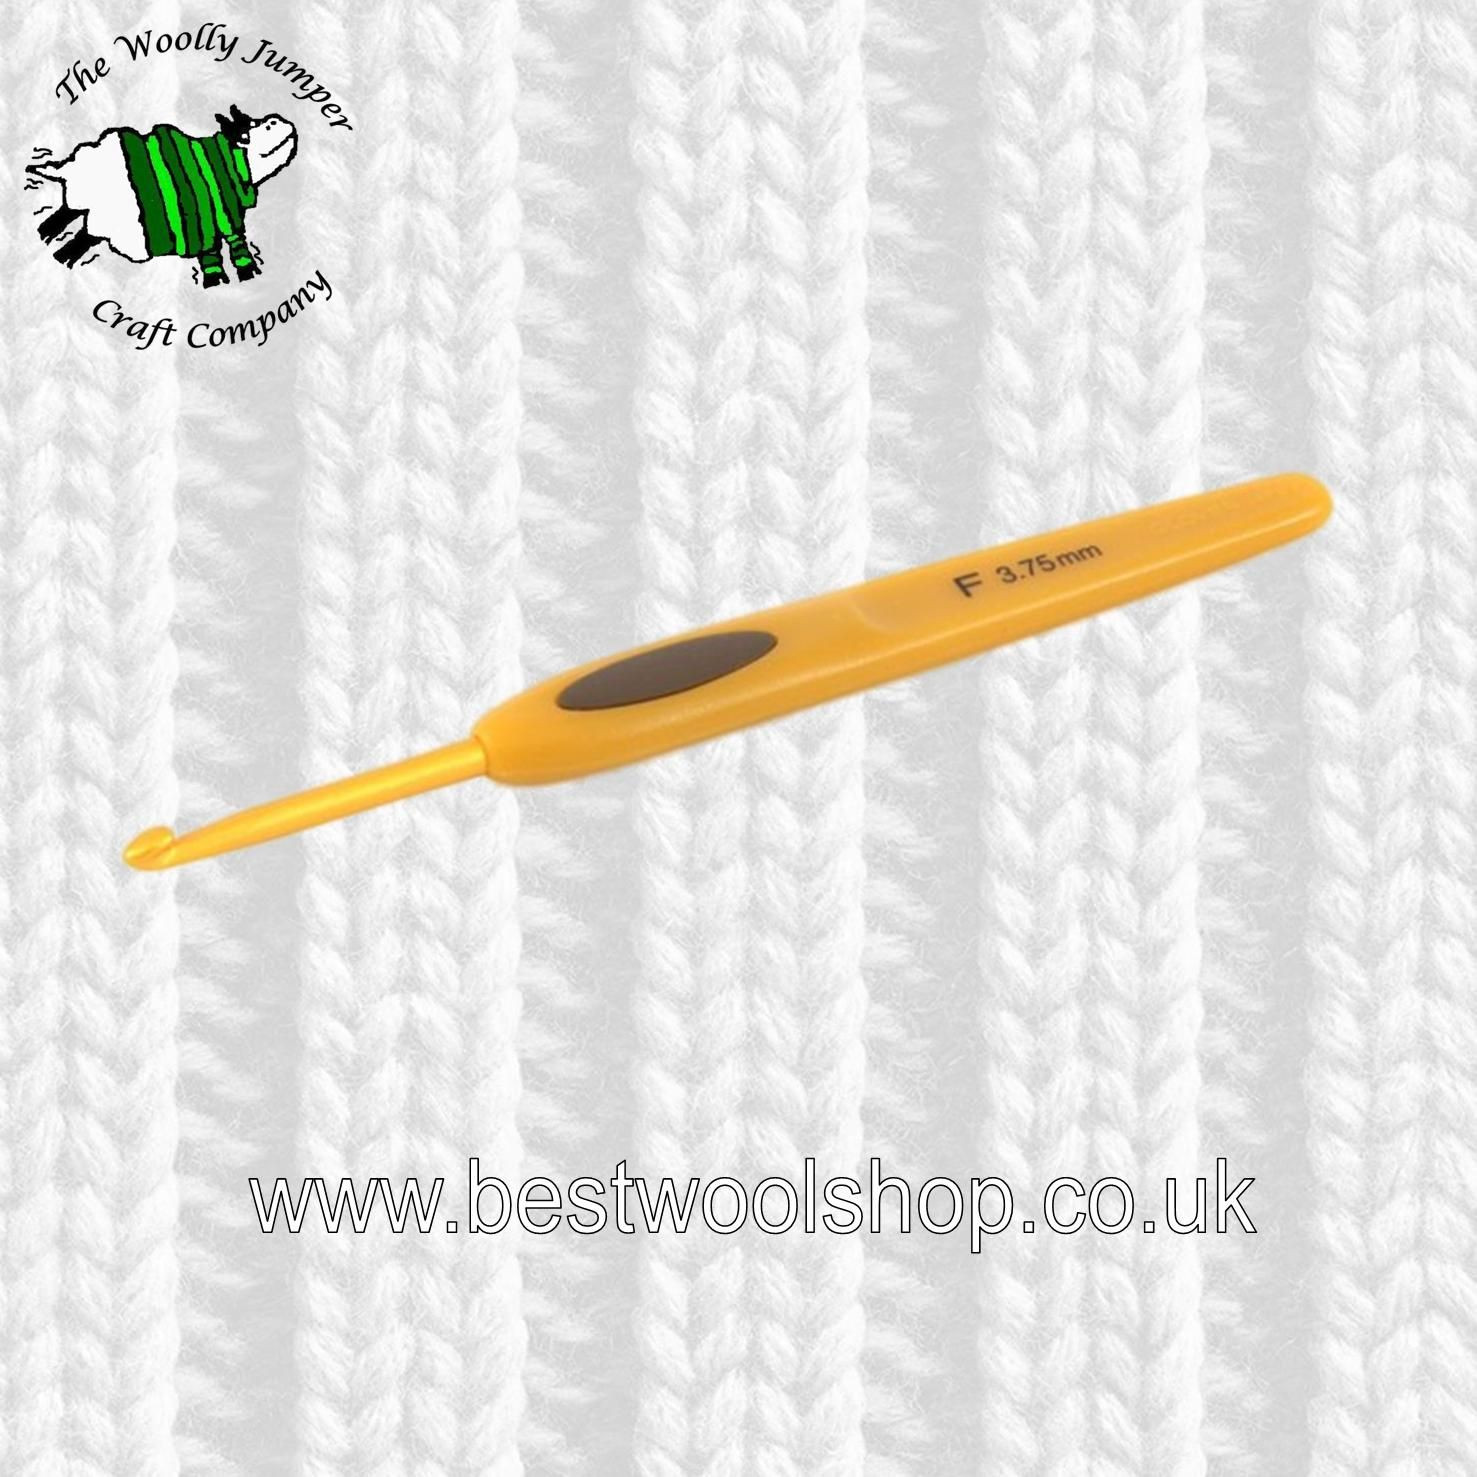 Elegant 3 75 Mm Clover soft touch Crochet Hook F Clover soft touch Crochet Hooks Of Beautiful Clover soft touch Crochet Hook 2 5 Mm at Yarns Dubai Clover soft touch Crochet Hooks